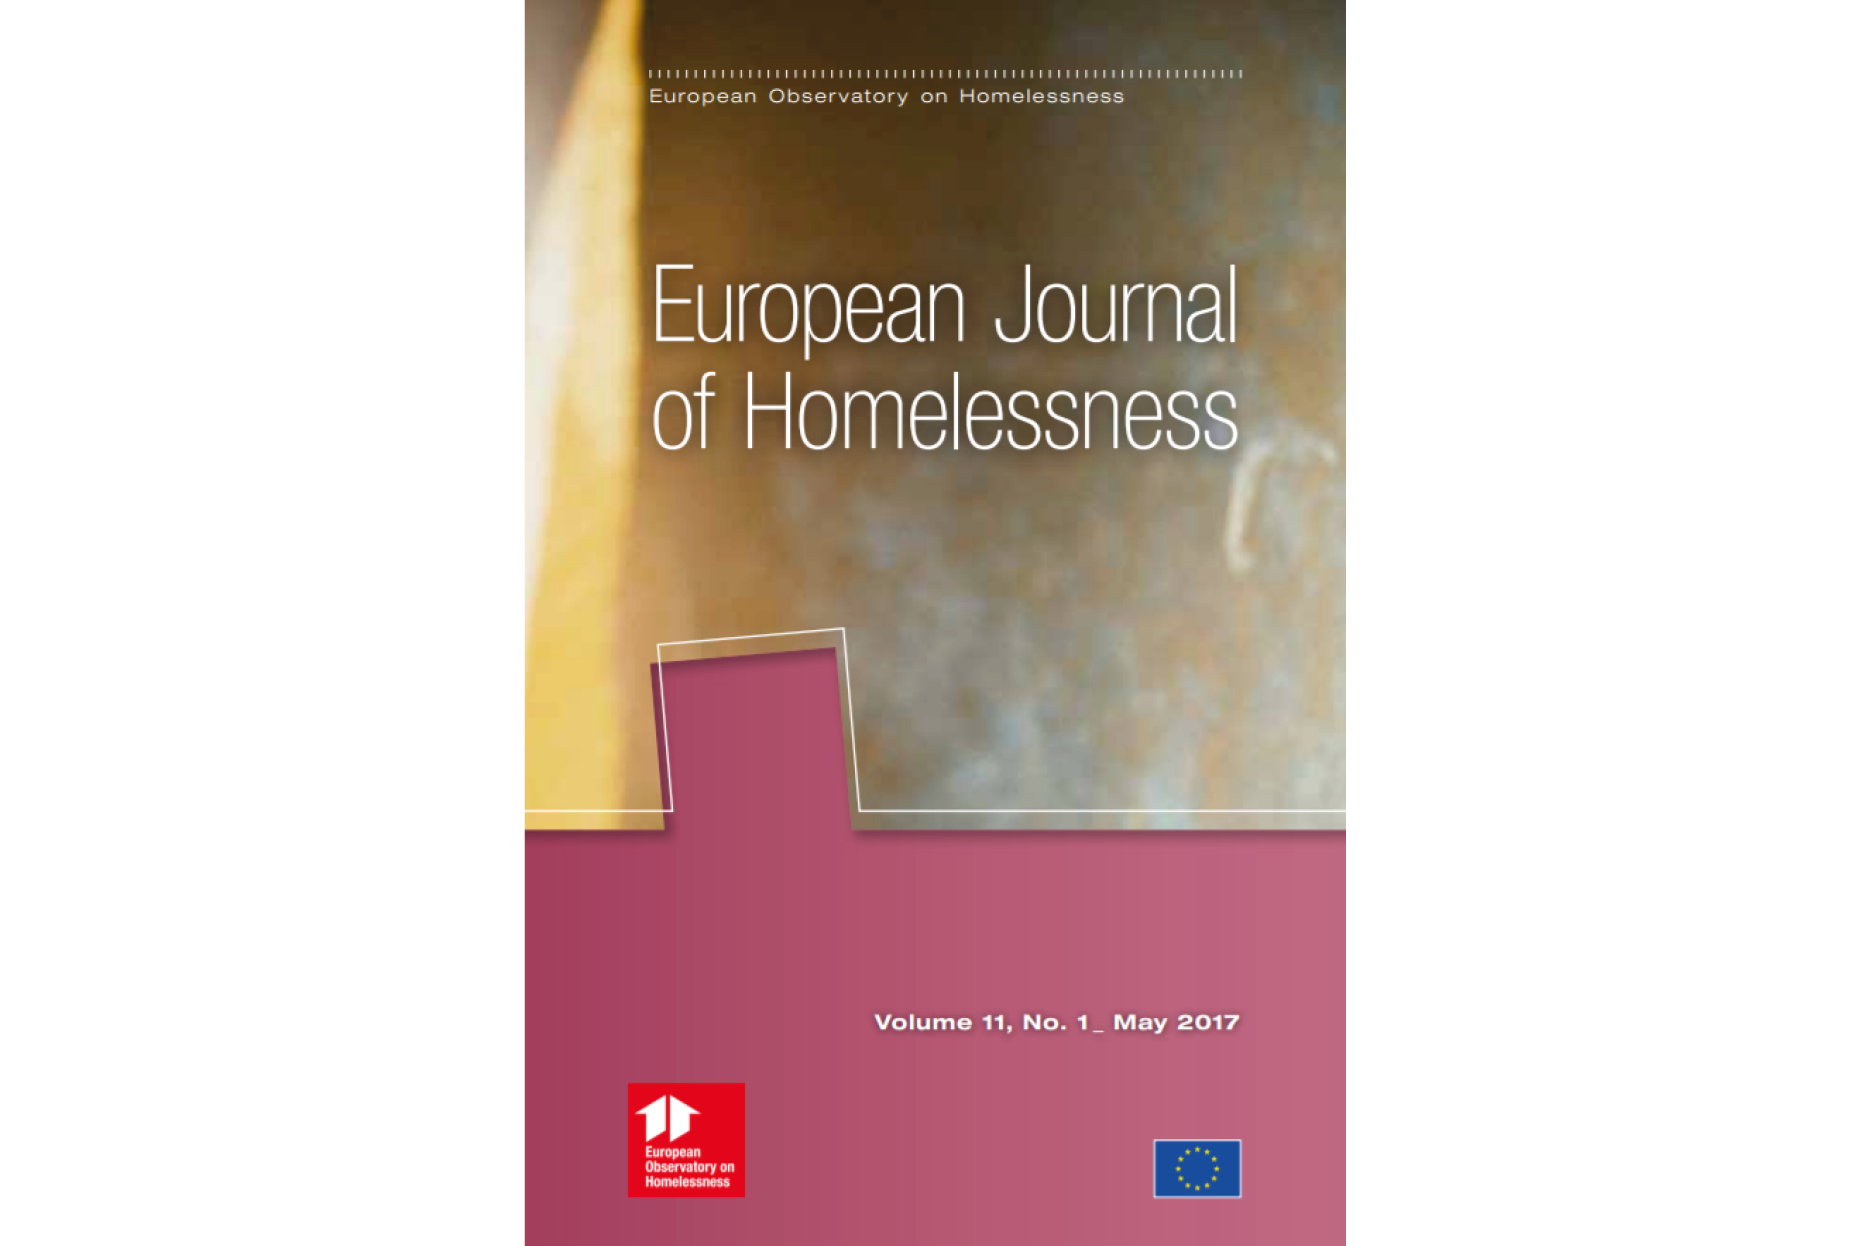 News: European Journal of Homelessness, Volume 11, No. 1 is out now!